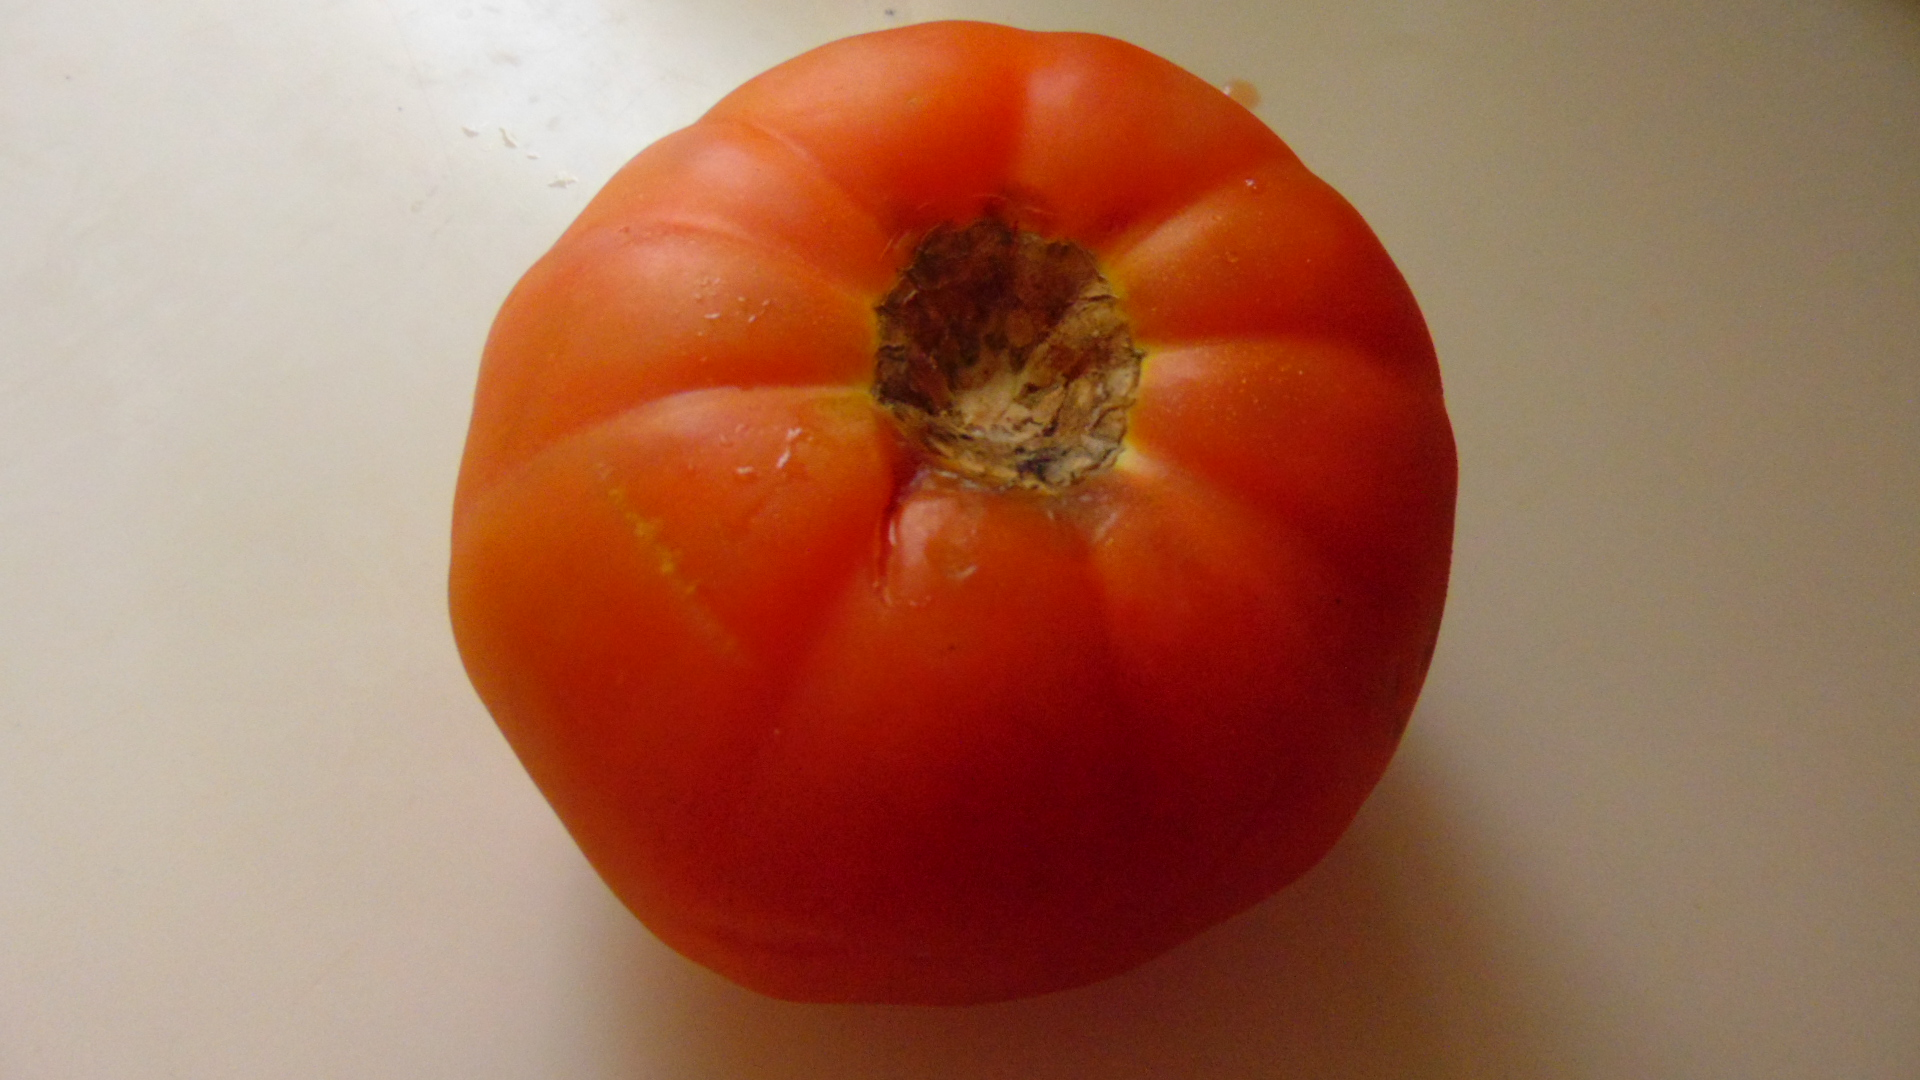 A big tomato from our garden.